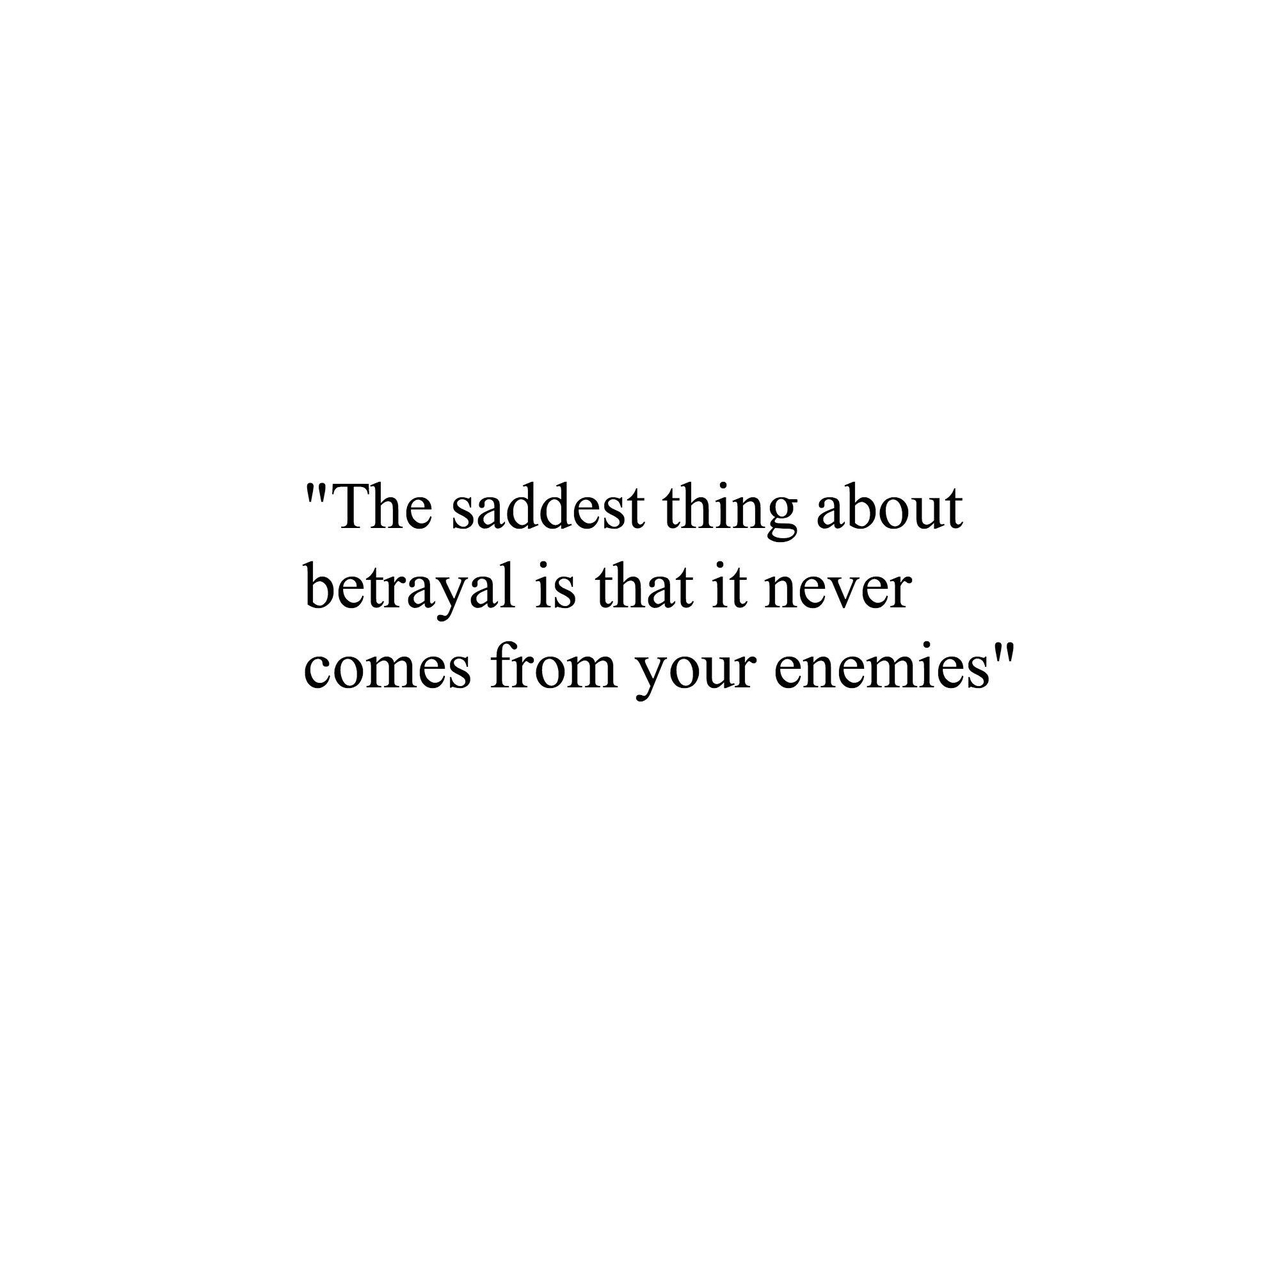 betrayal, enemies, quote, quotes, sad - image #2878337 by